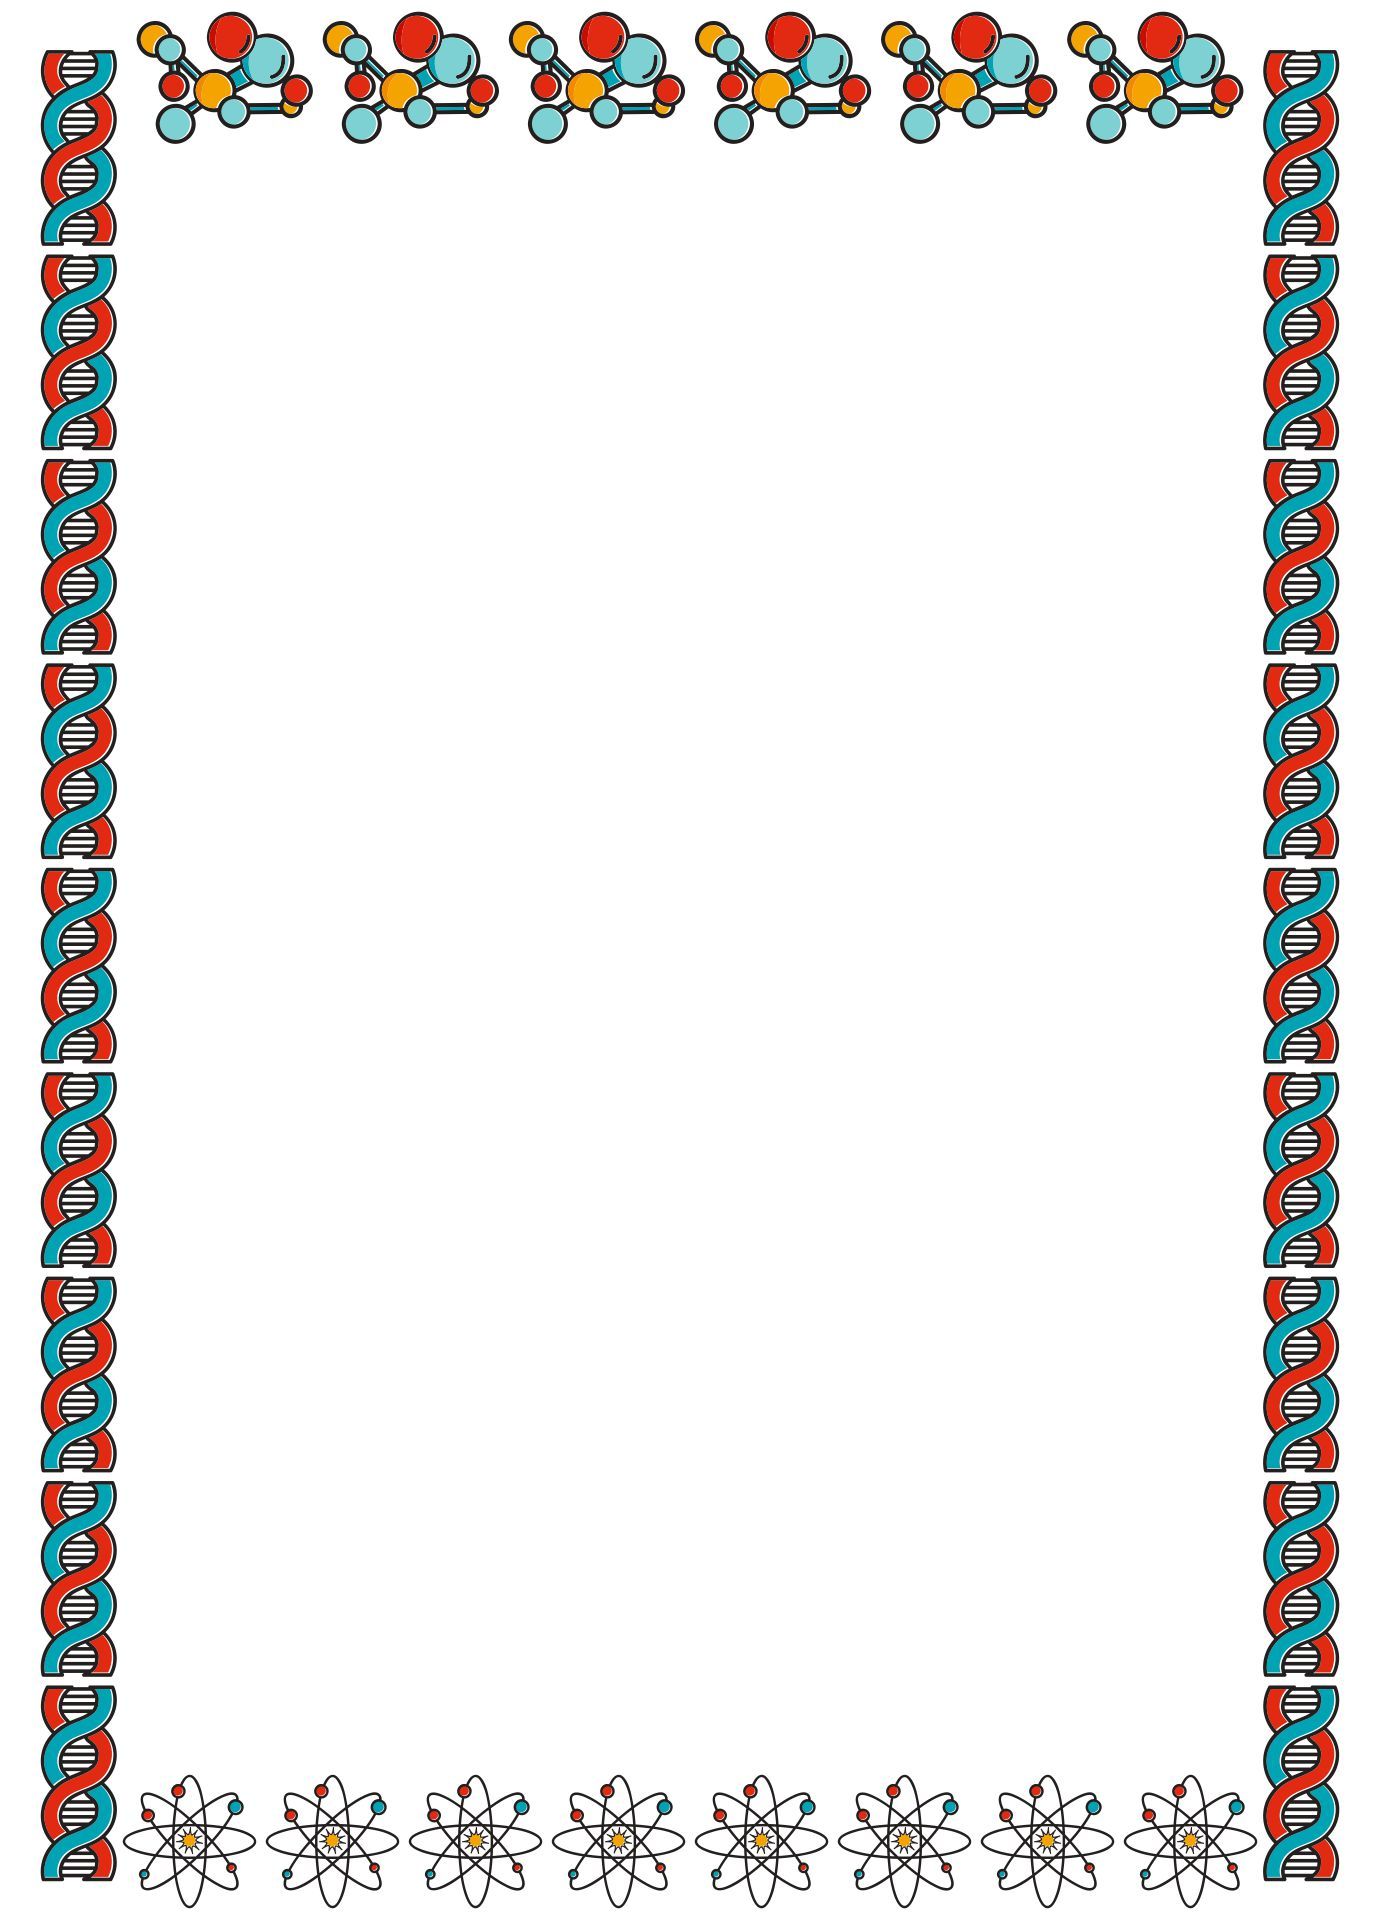 Printable Science Project Borders